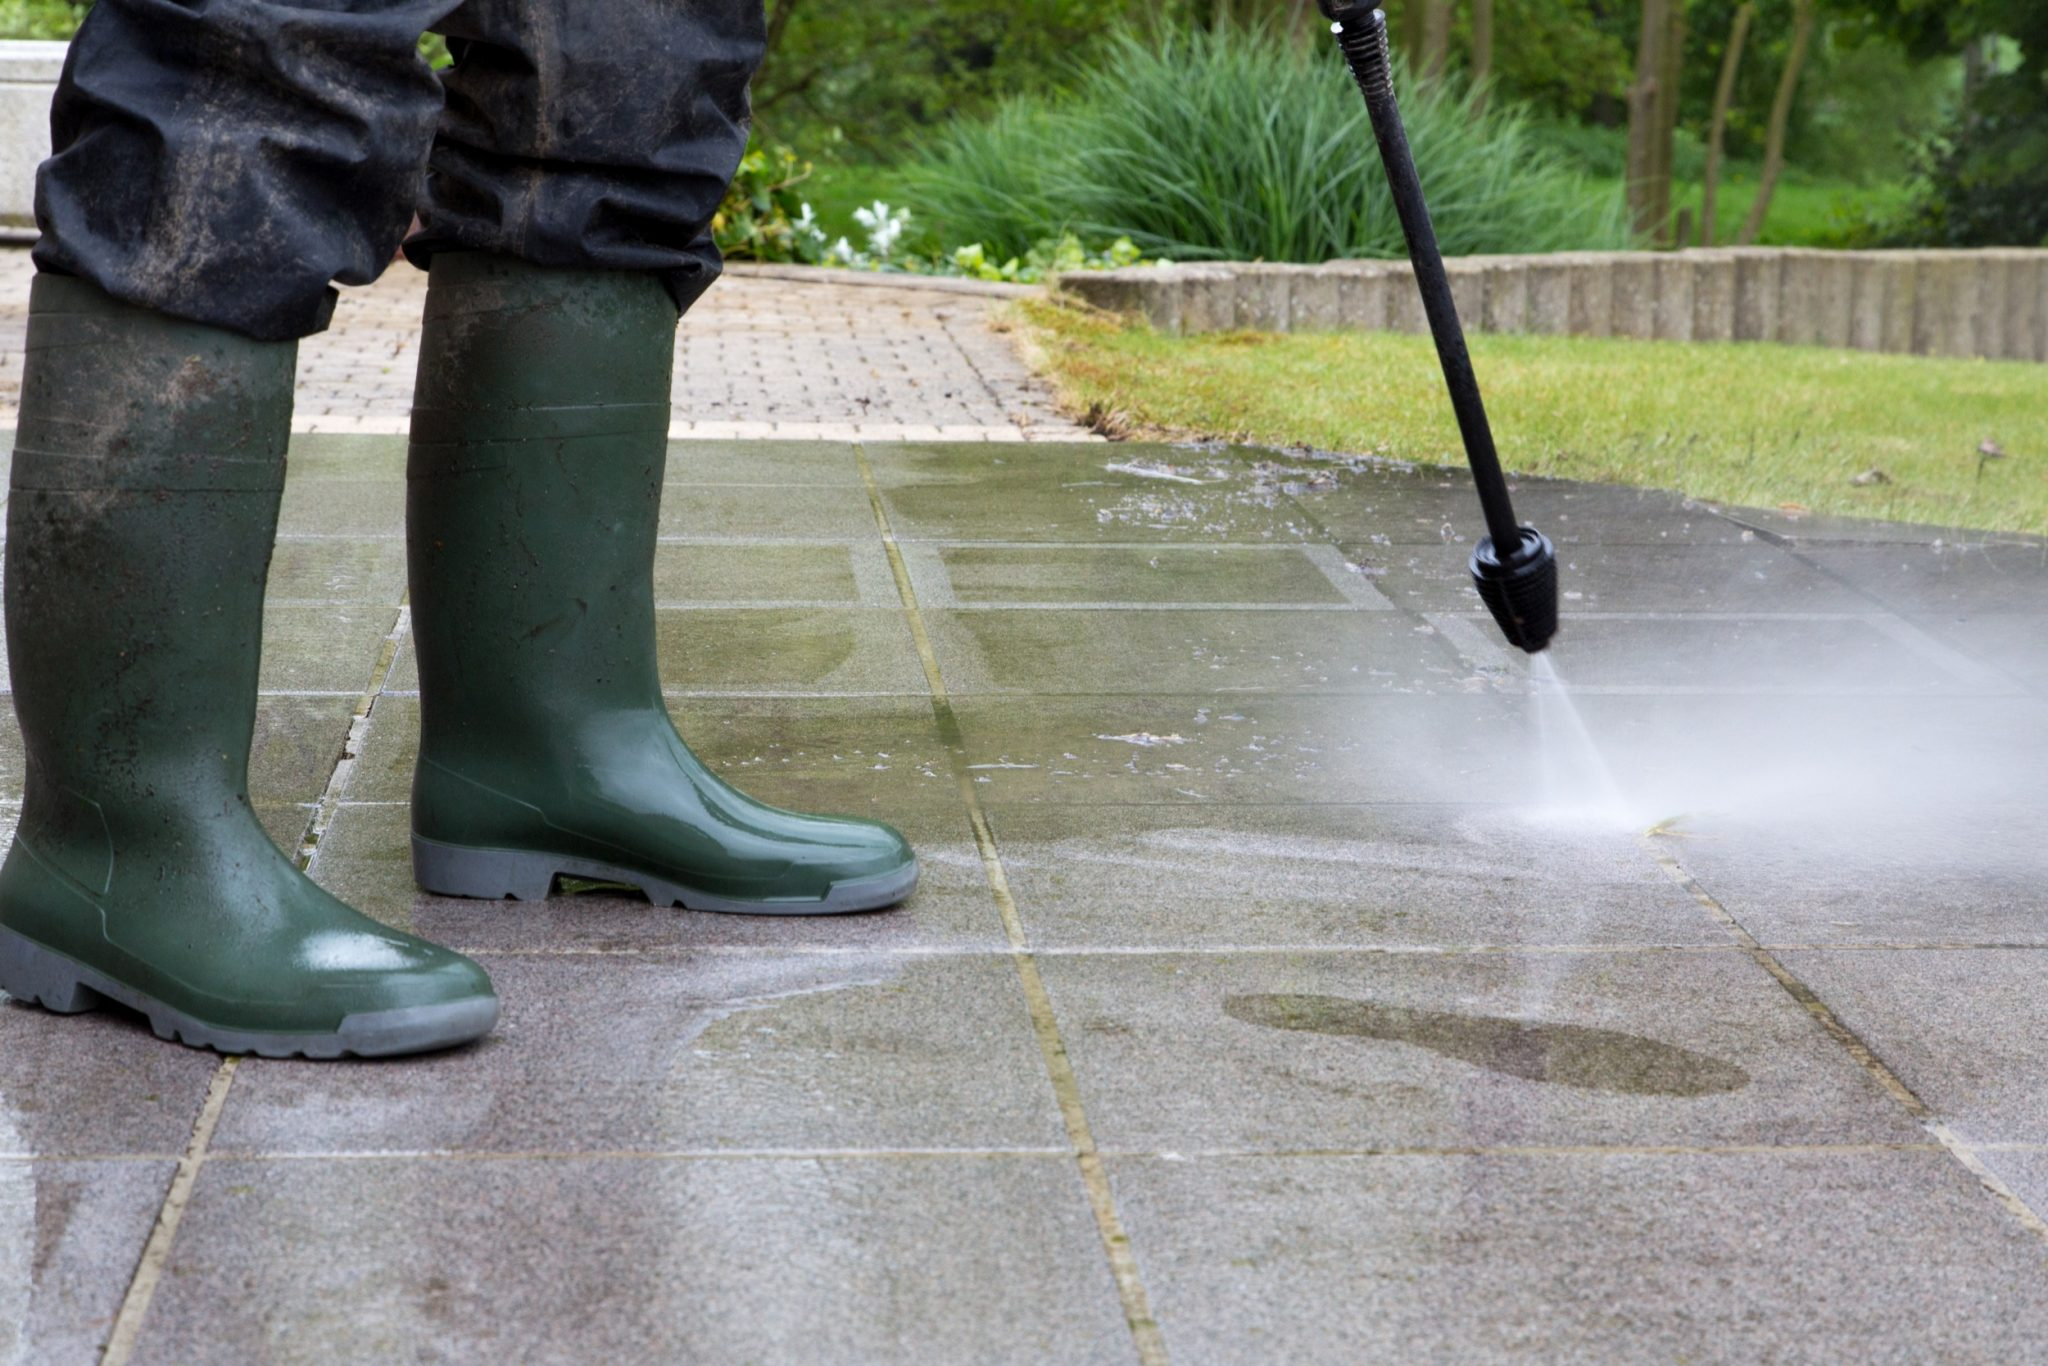 power washing vs soft washing